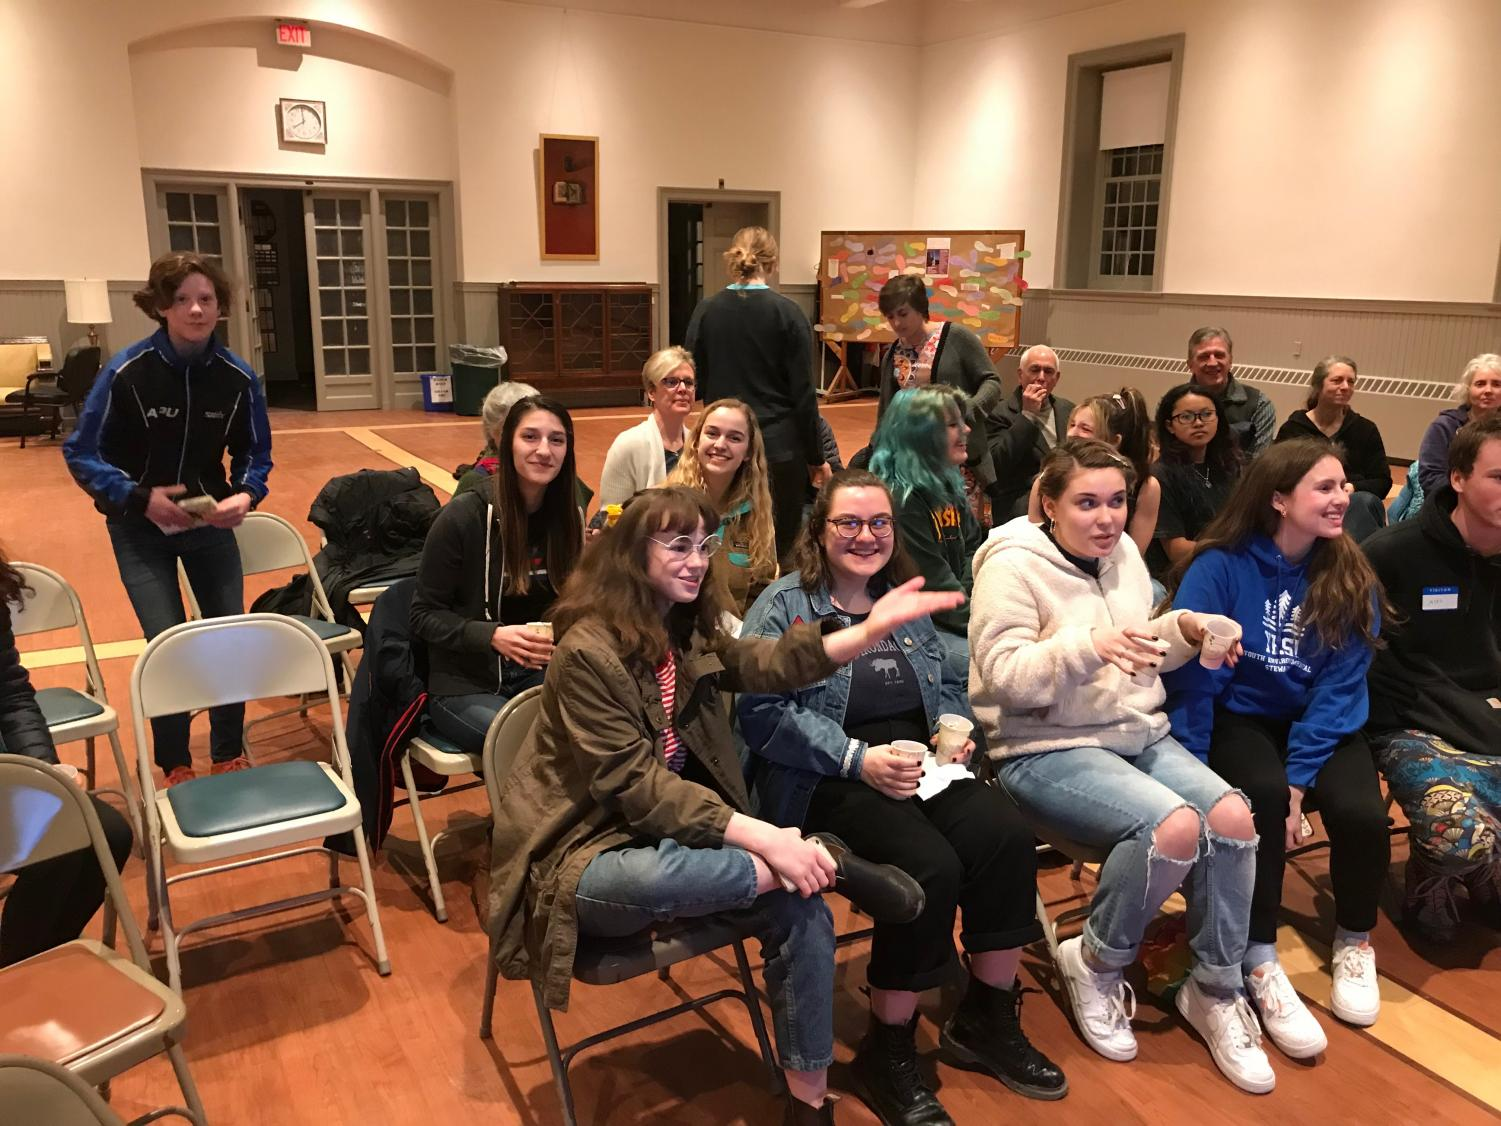 Mt. Greylock students and community members gather at the First Congregational Church.